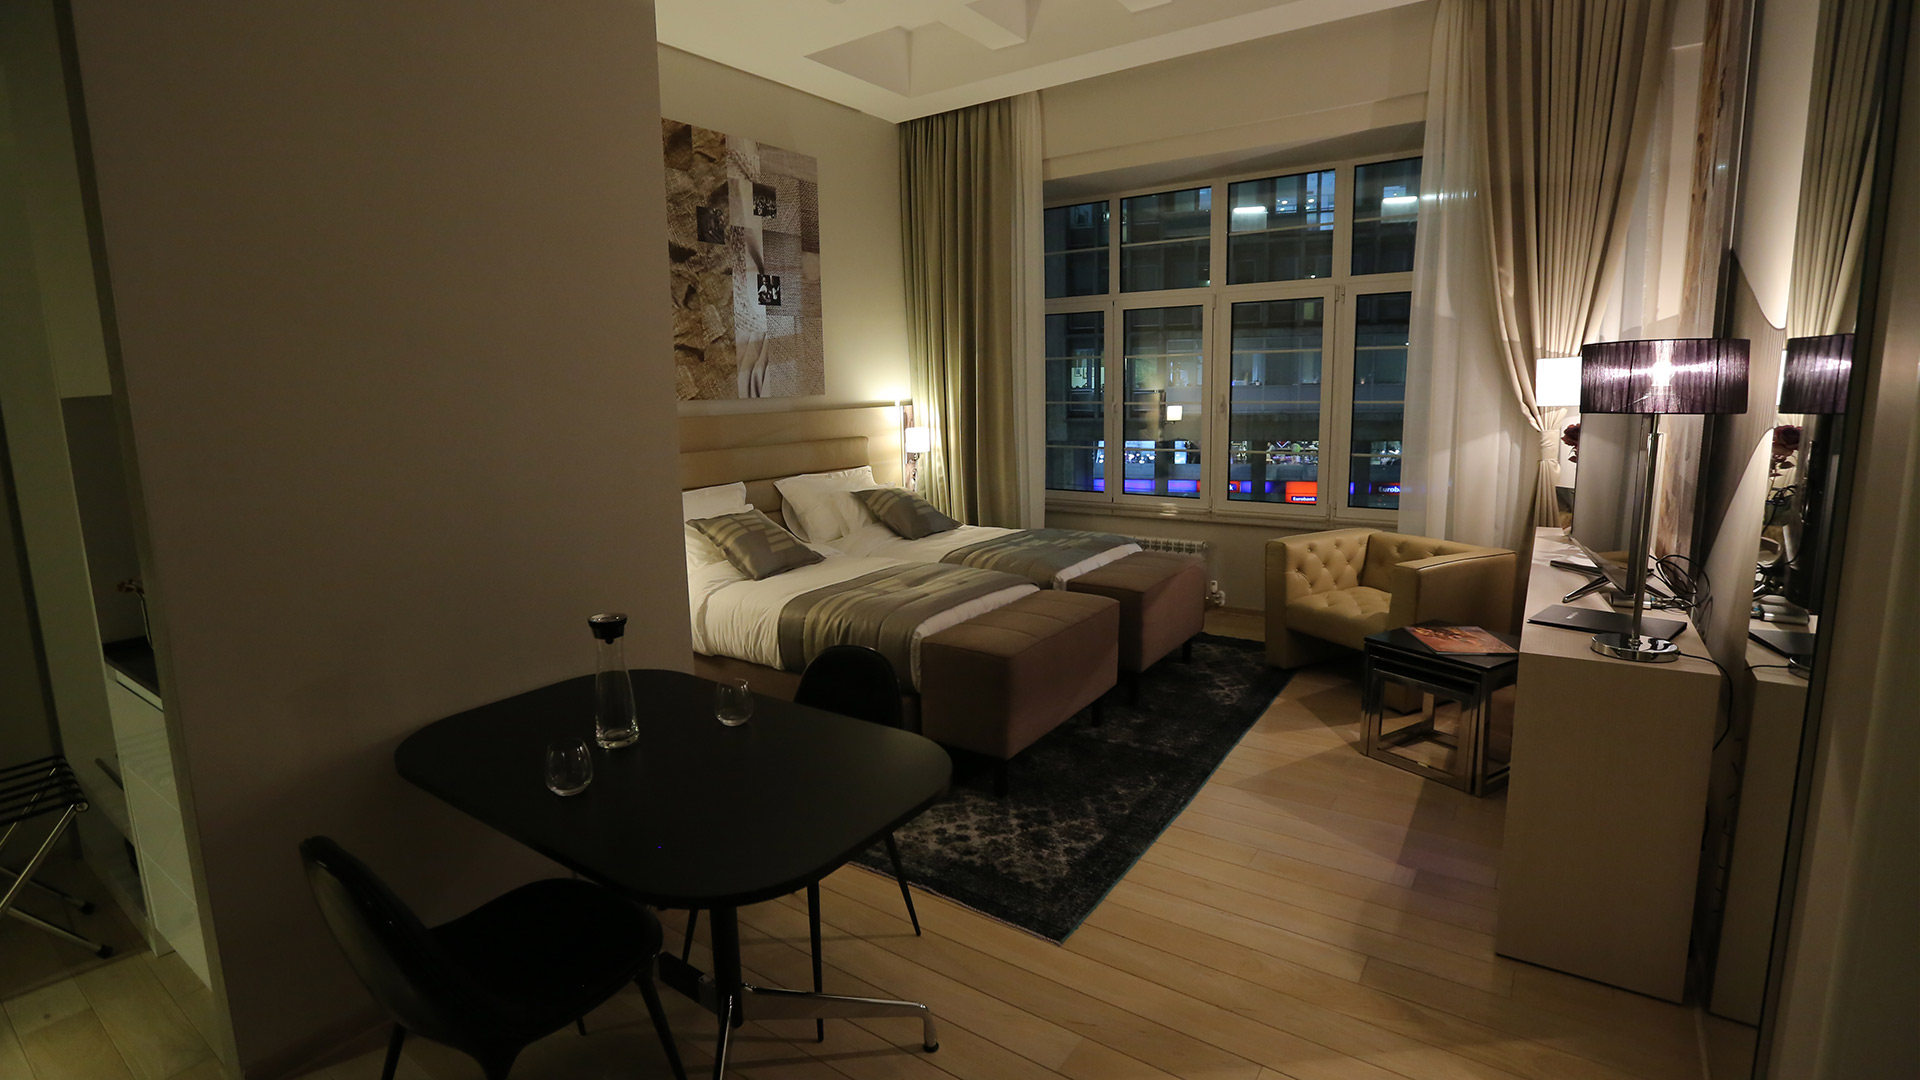 Zepter-Hotels-Belgrade-room